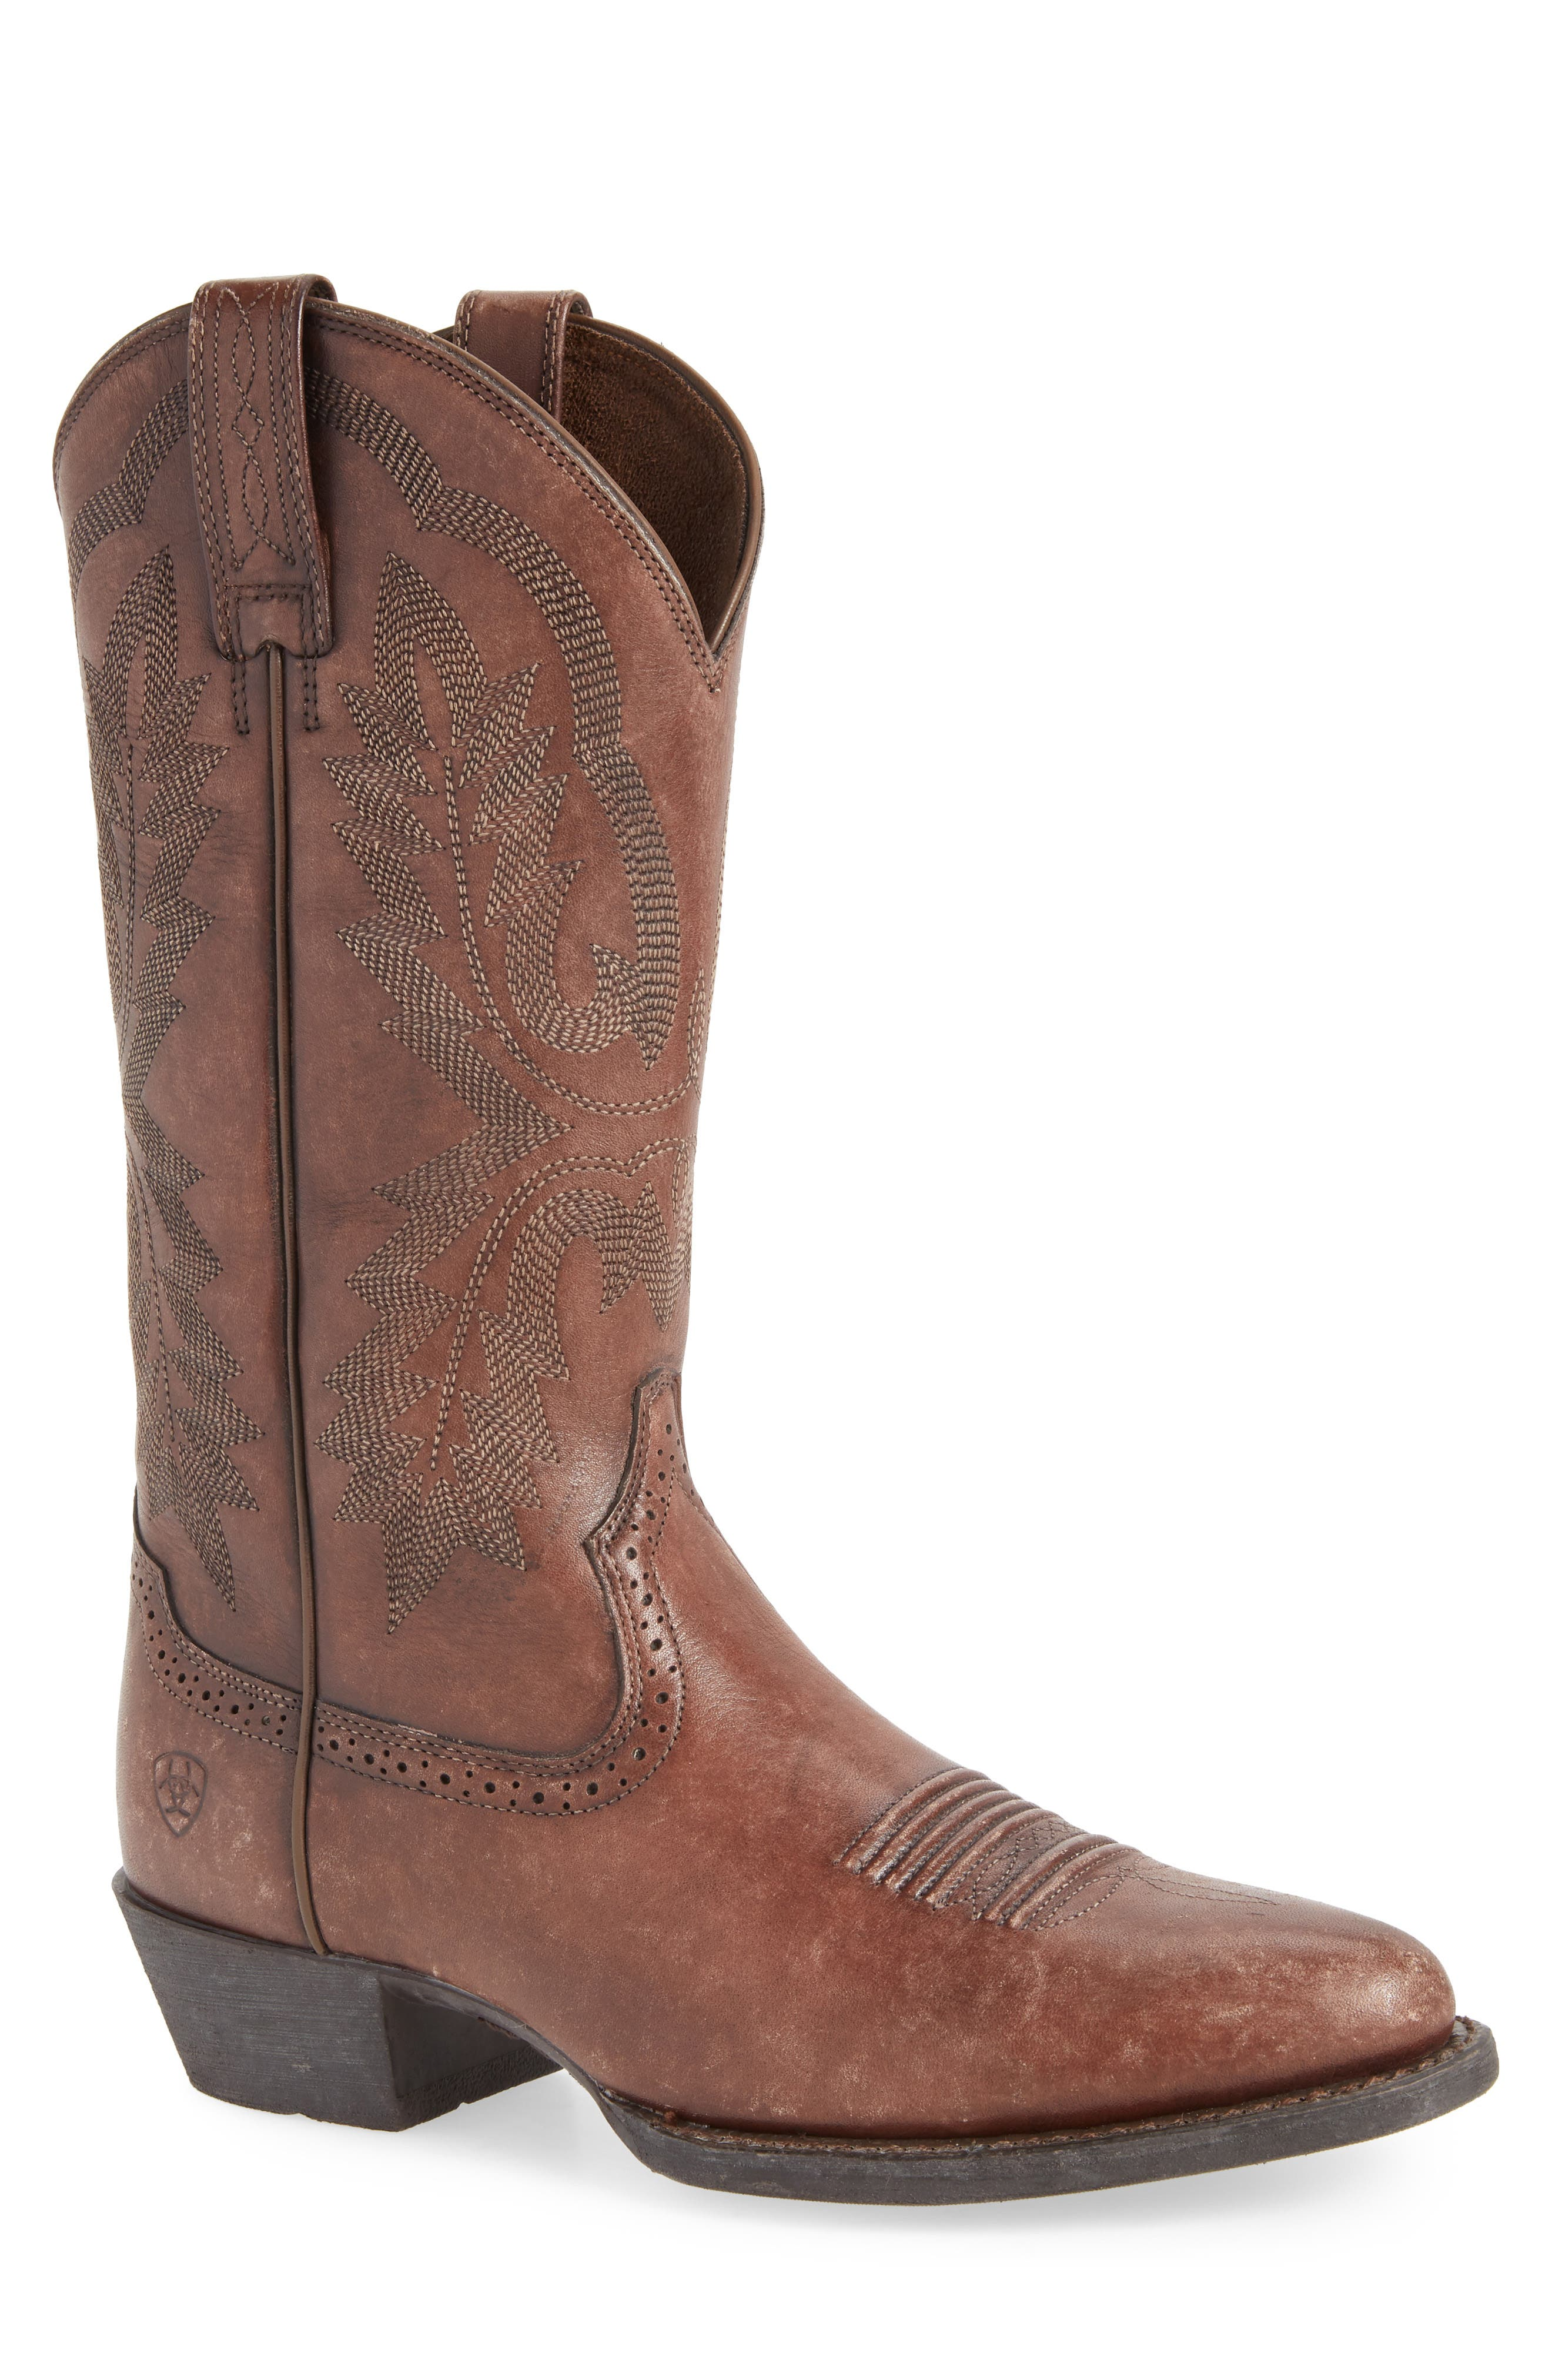 Heritage Calhoun Western R-Toe Boot,                         Main,                         color, NATURAL BROWN LEATHER